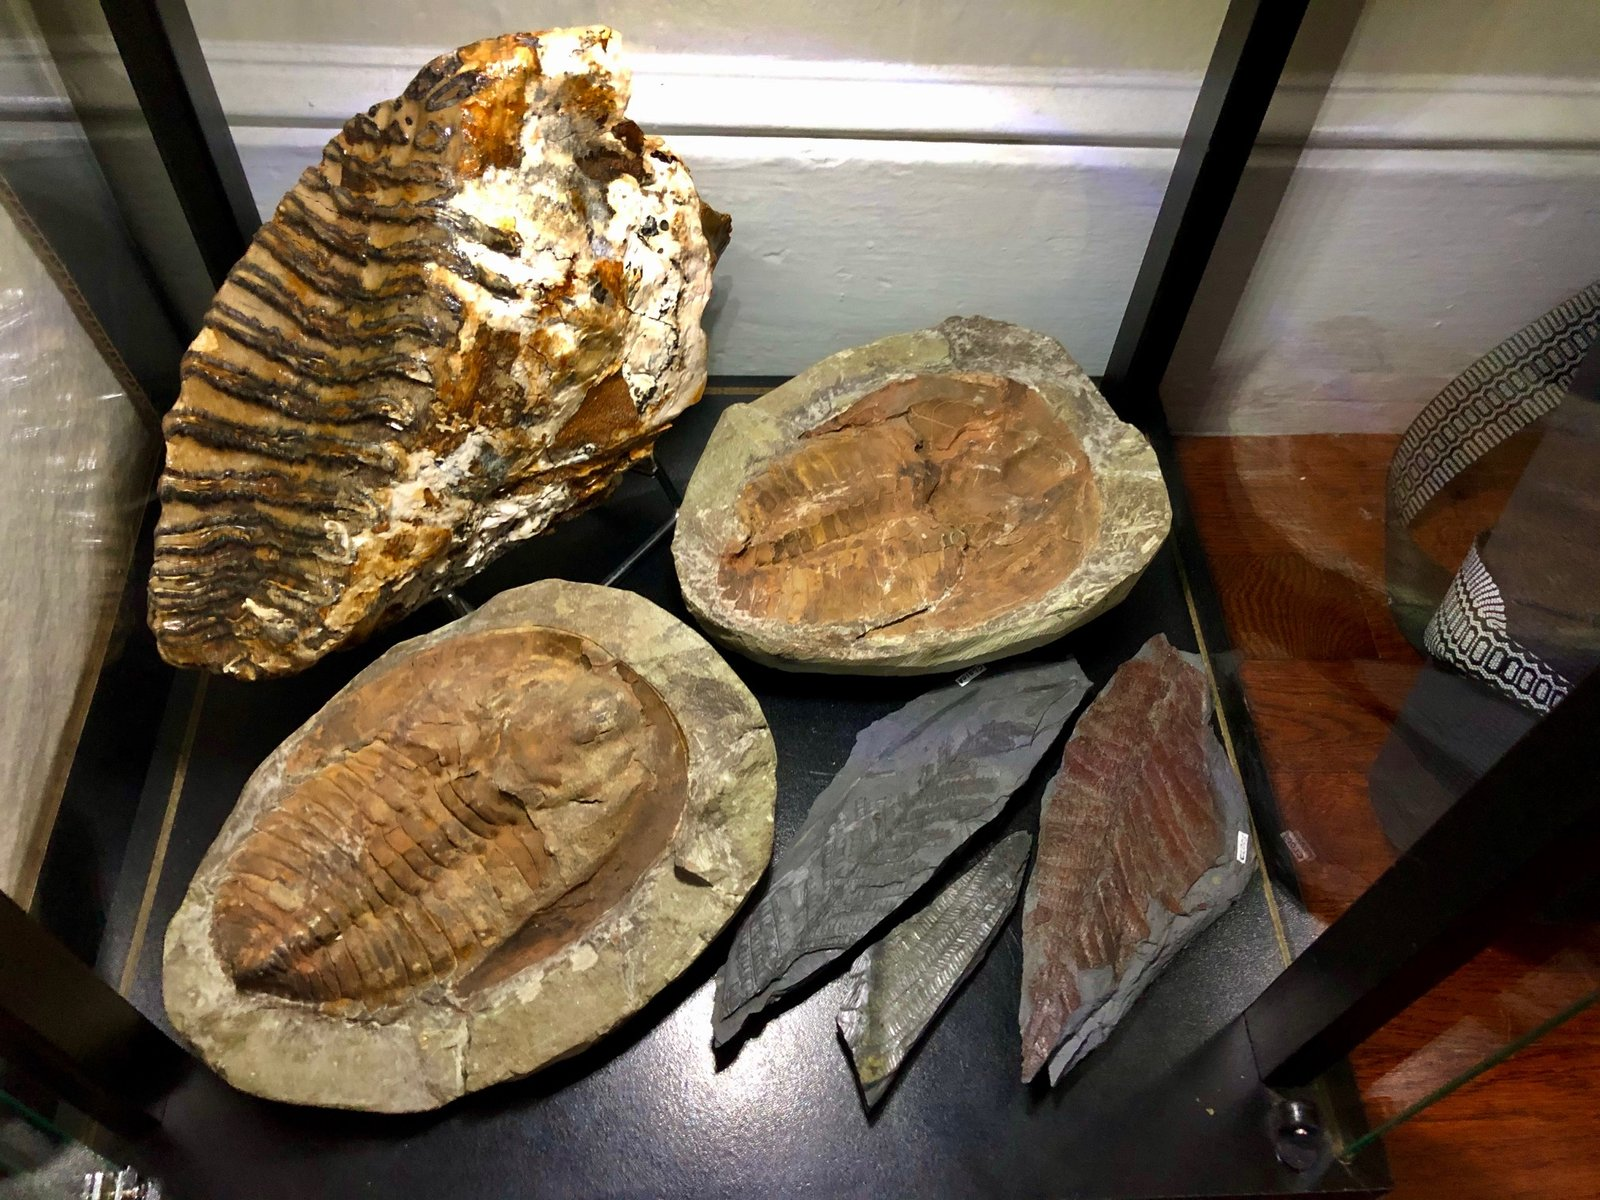 Mammoth M3 Molar, Cambropallas and Ferns